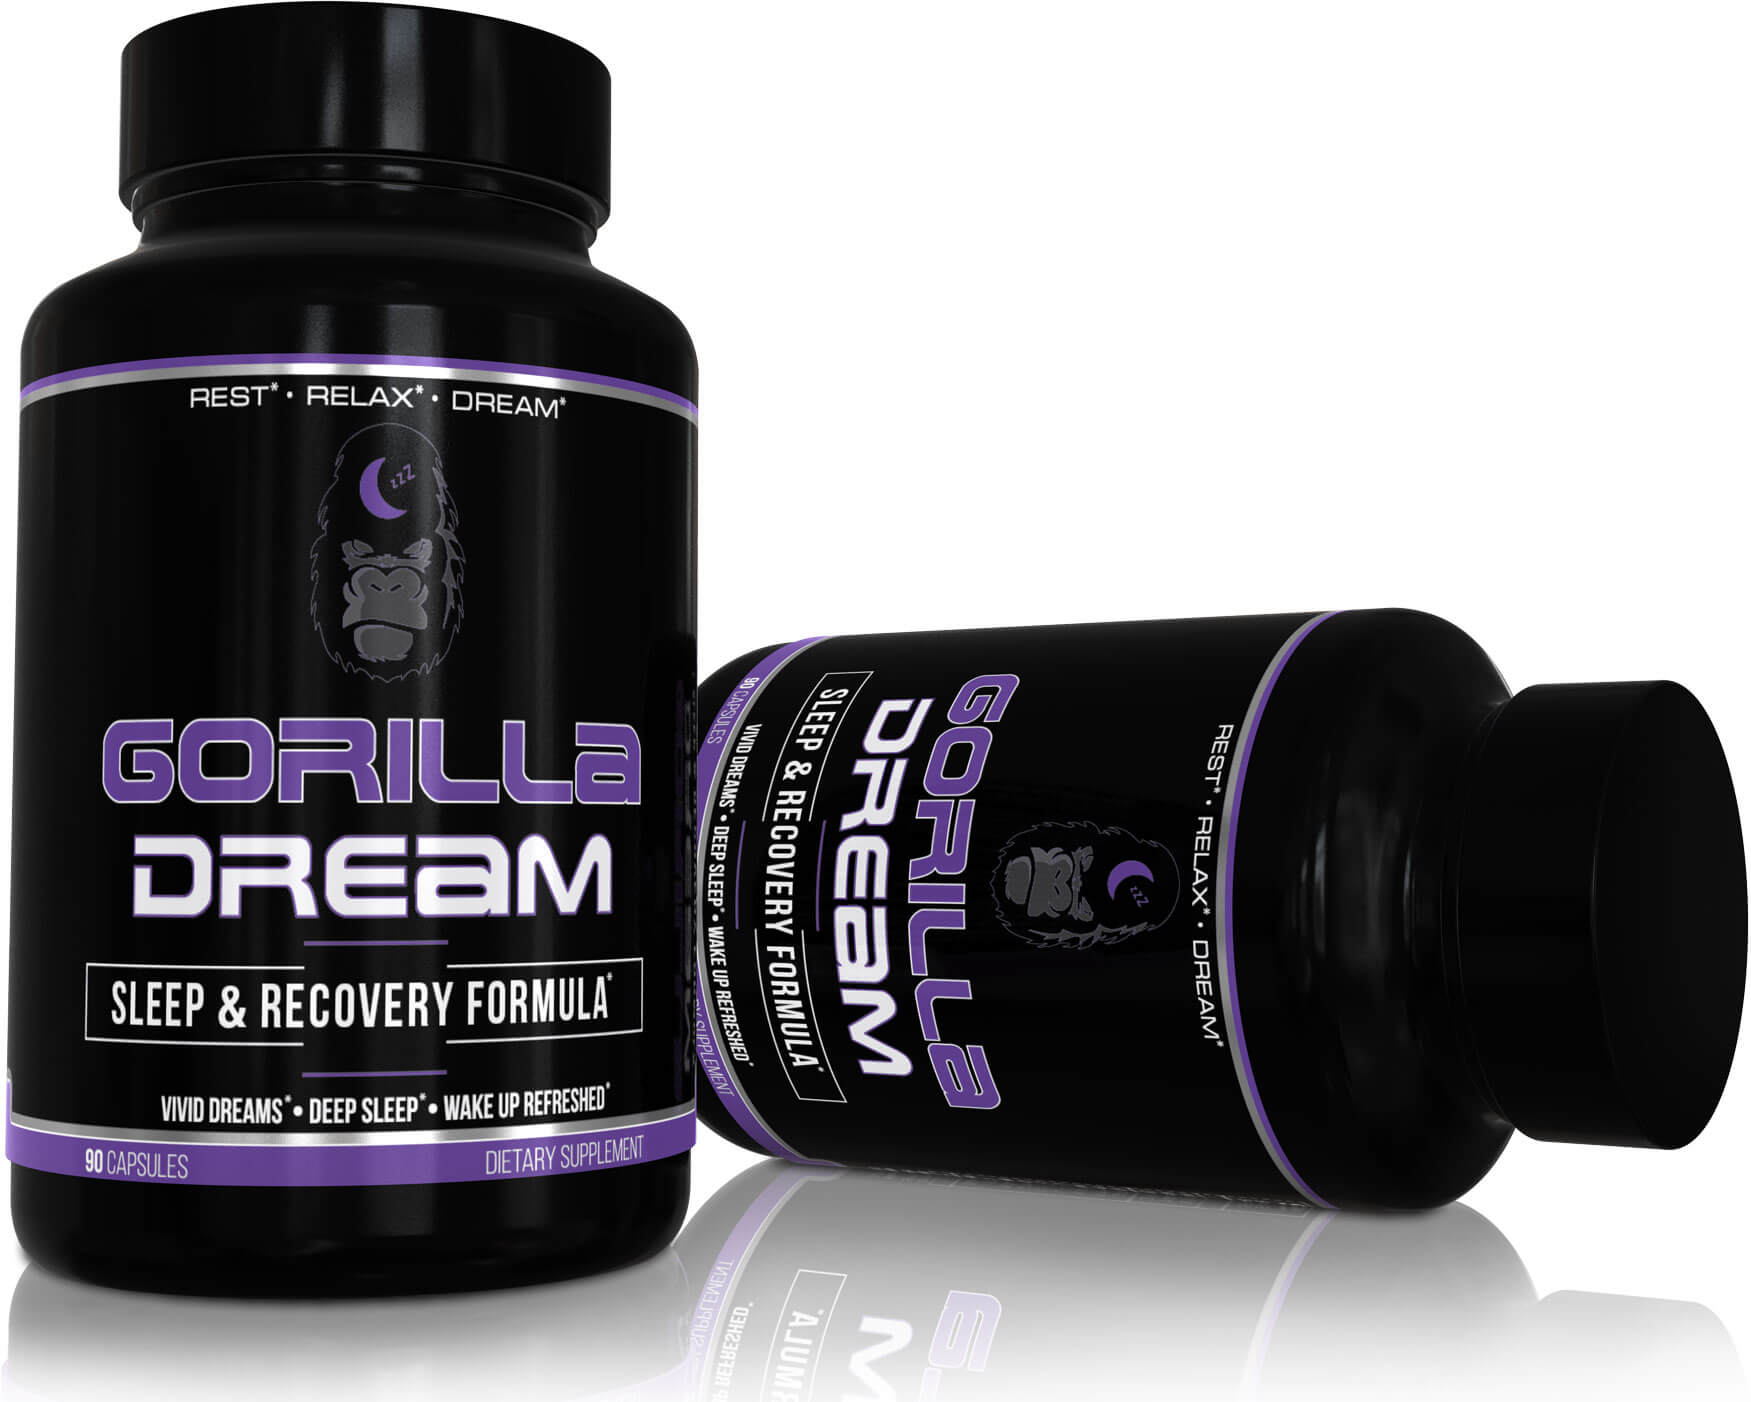 Gorilla Dream Sleep and Recovery Formula Review 2019 - Good